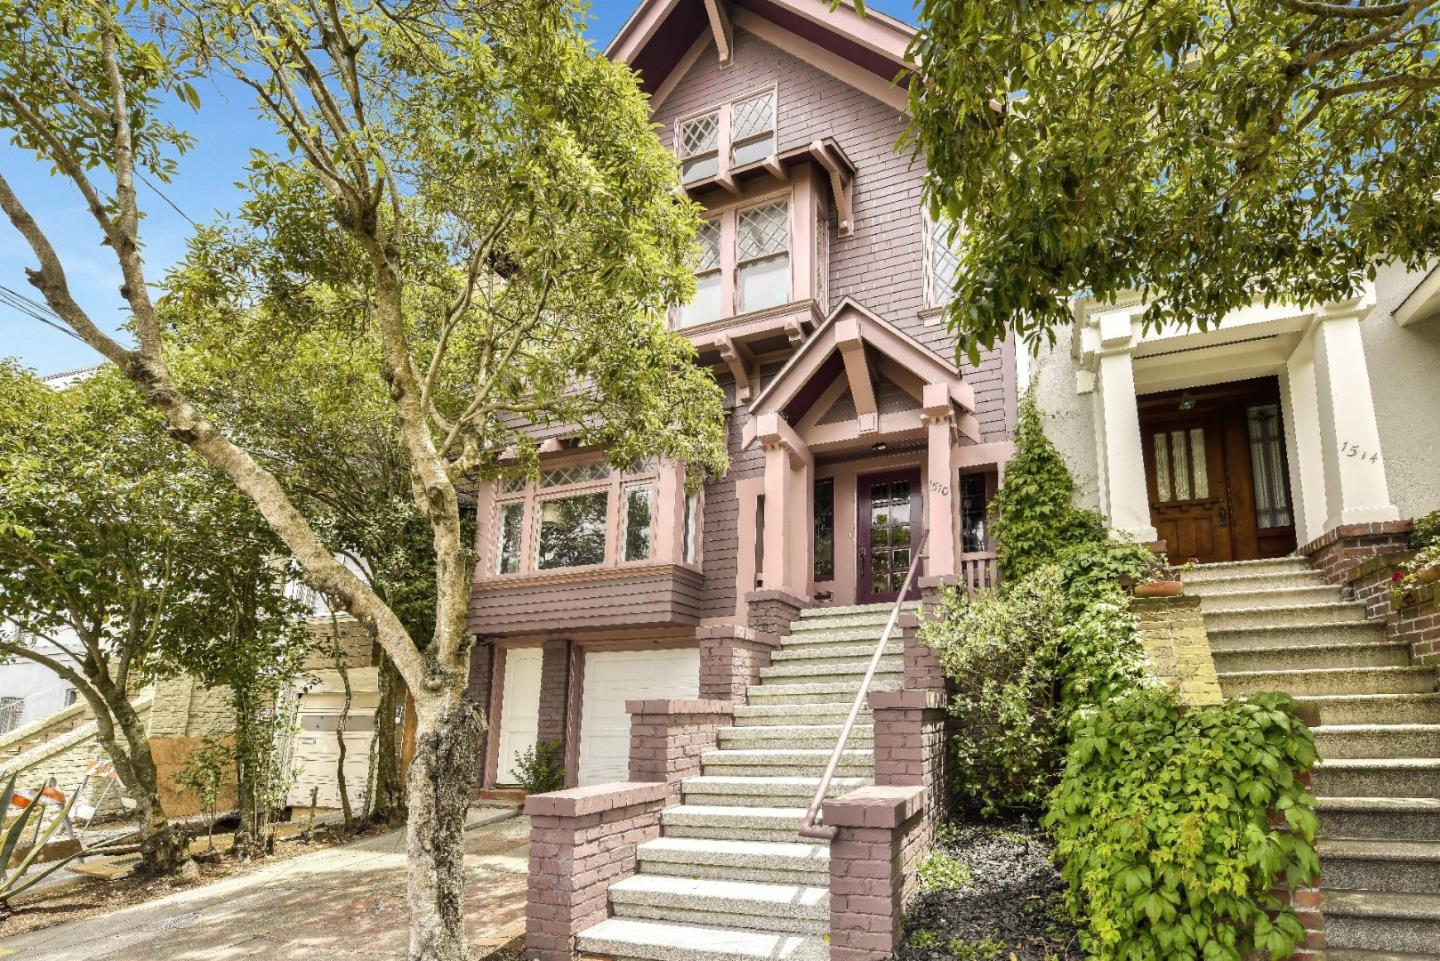 Photo of  1510 7Th Avenue San Francisco 94122